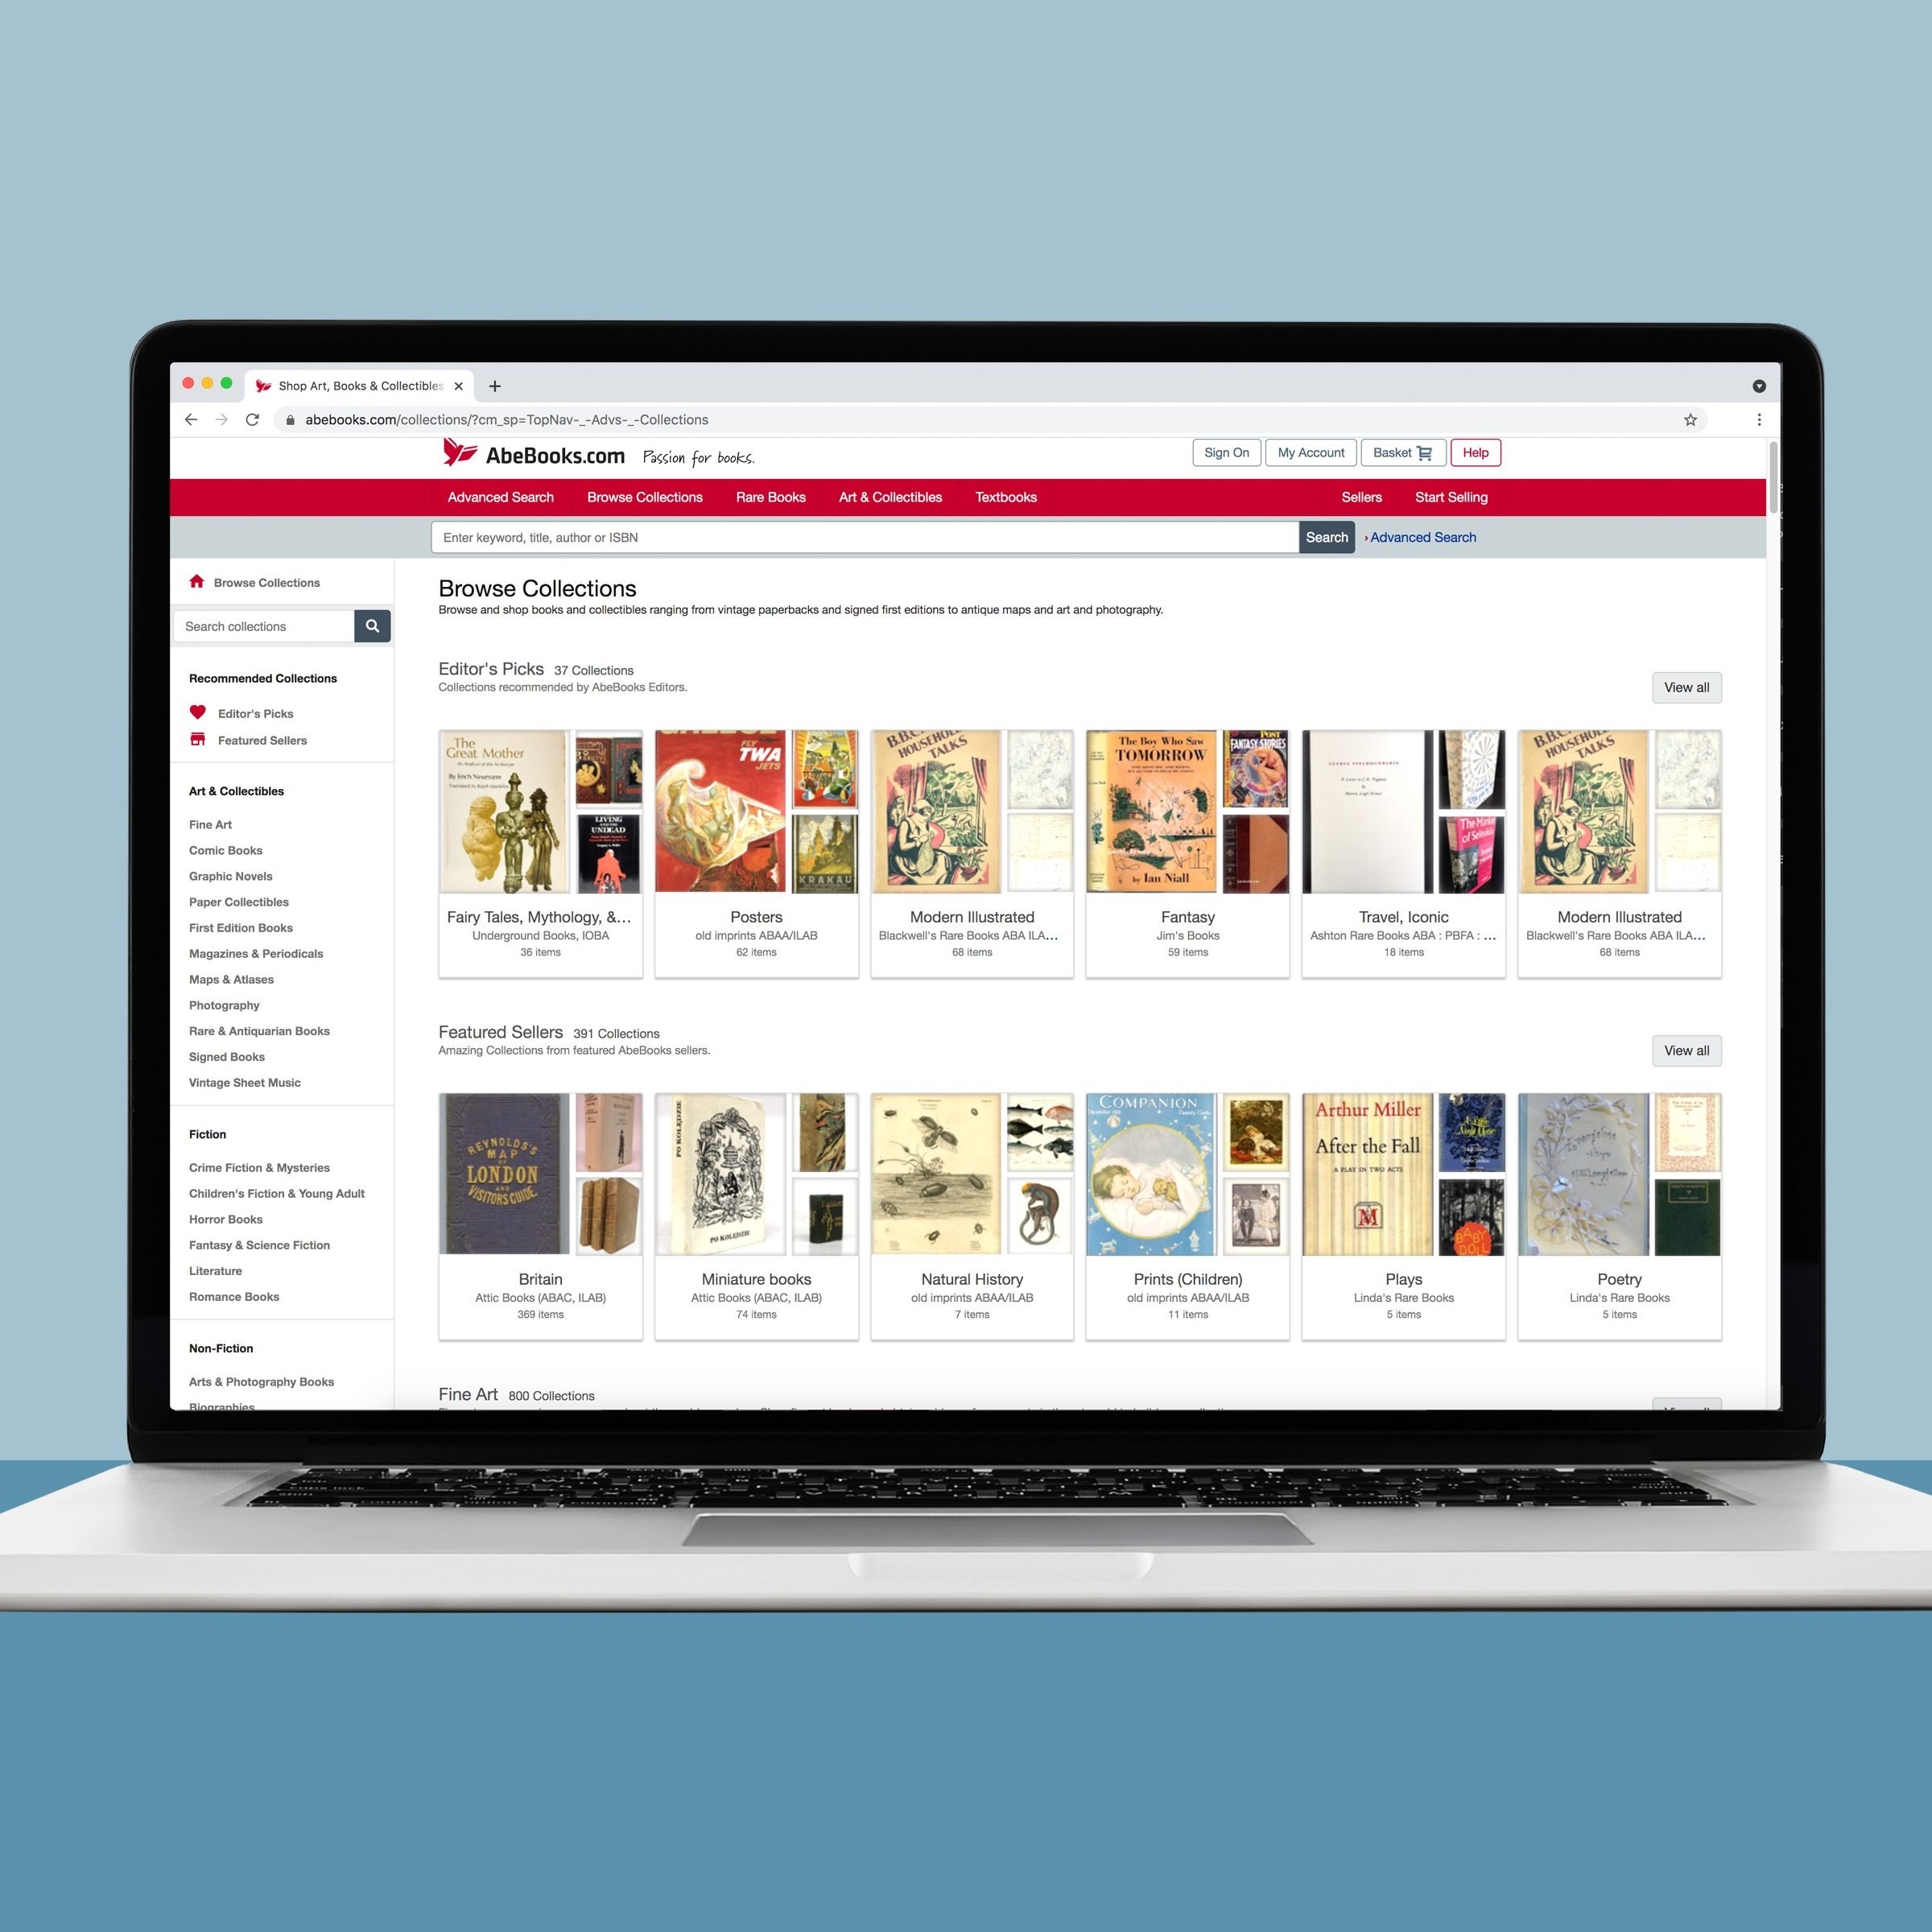 Abebooks the online used book retailer